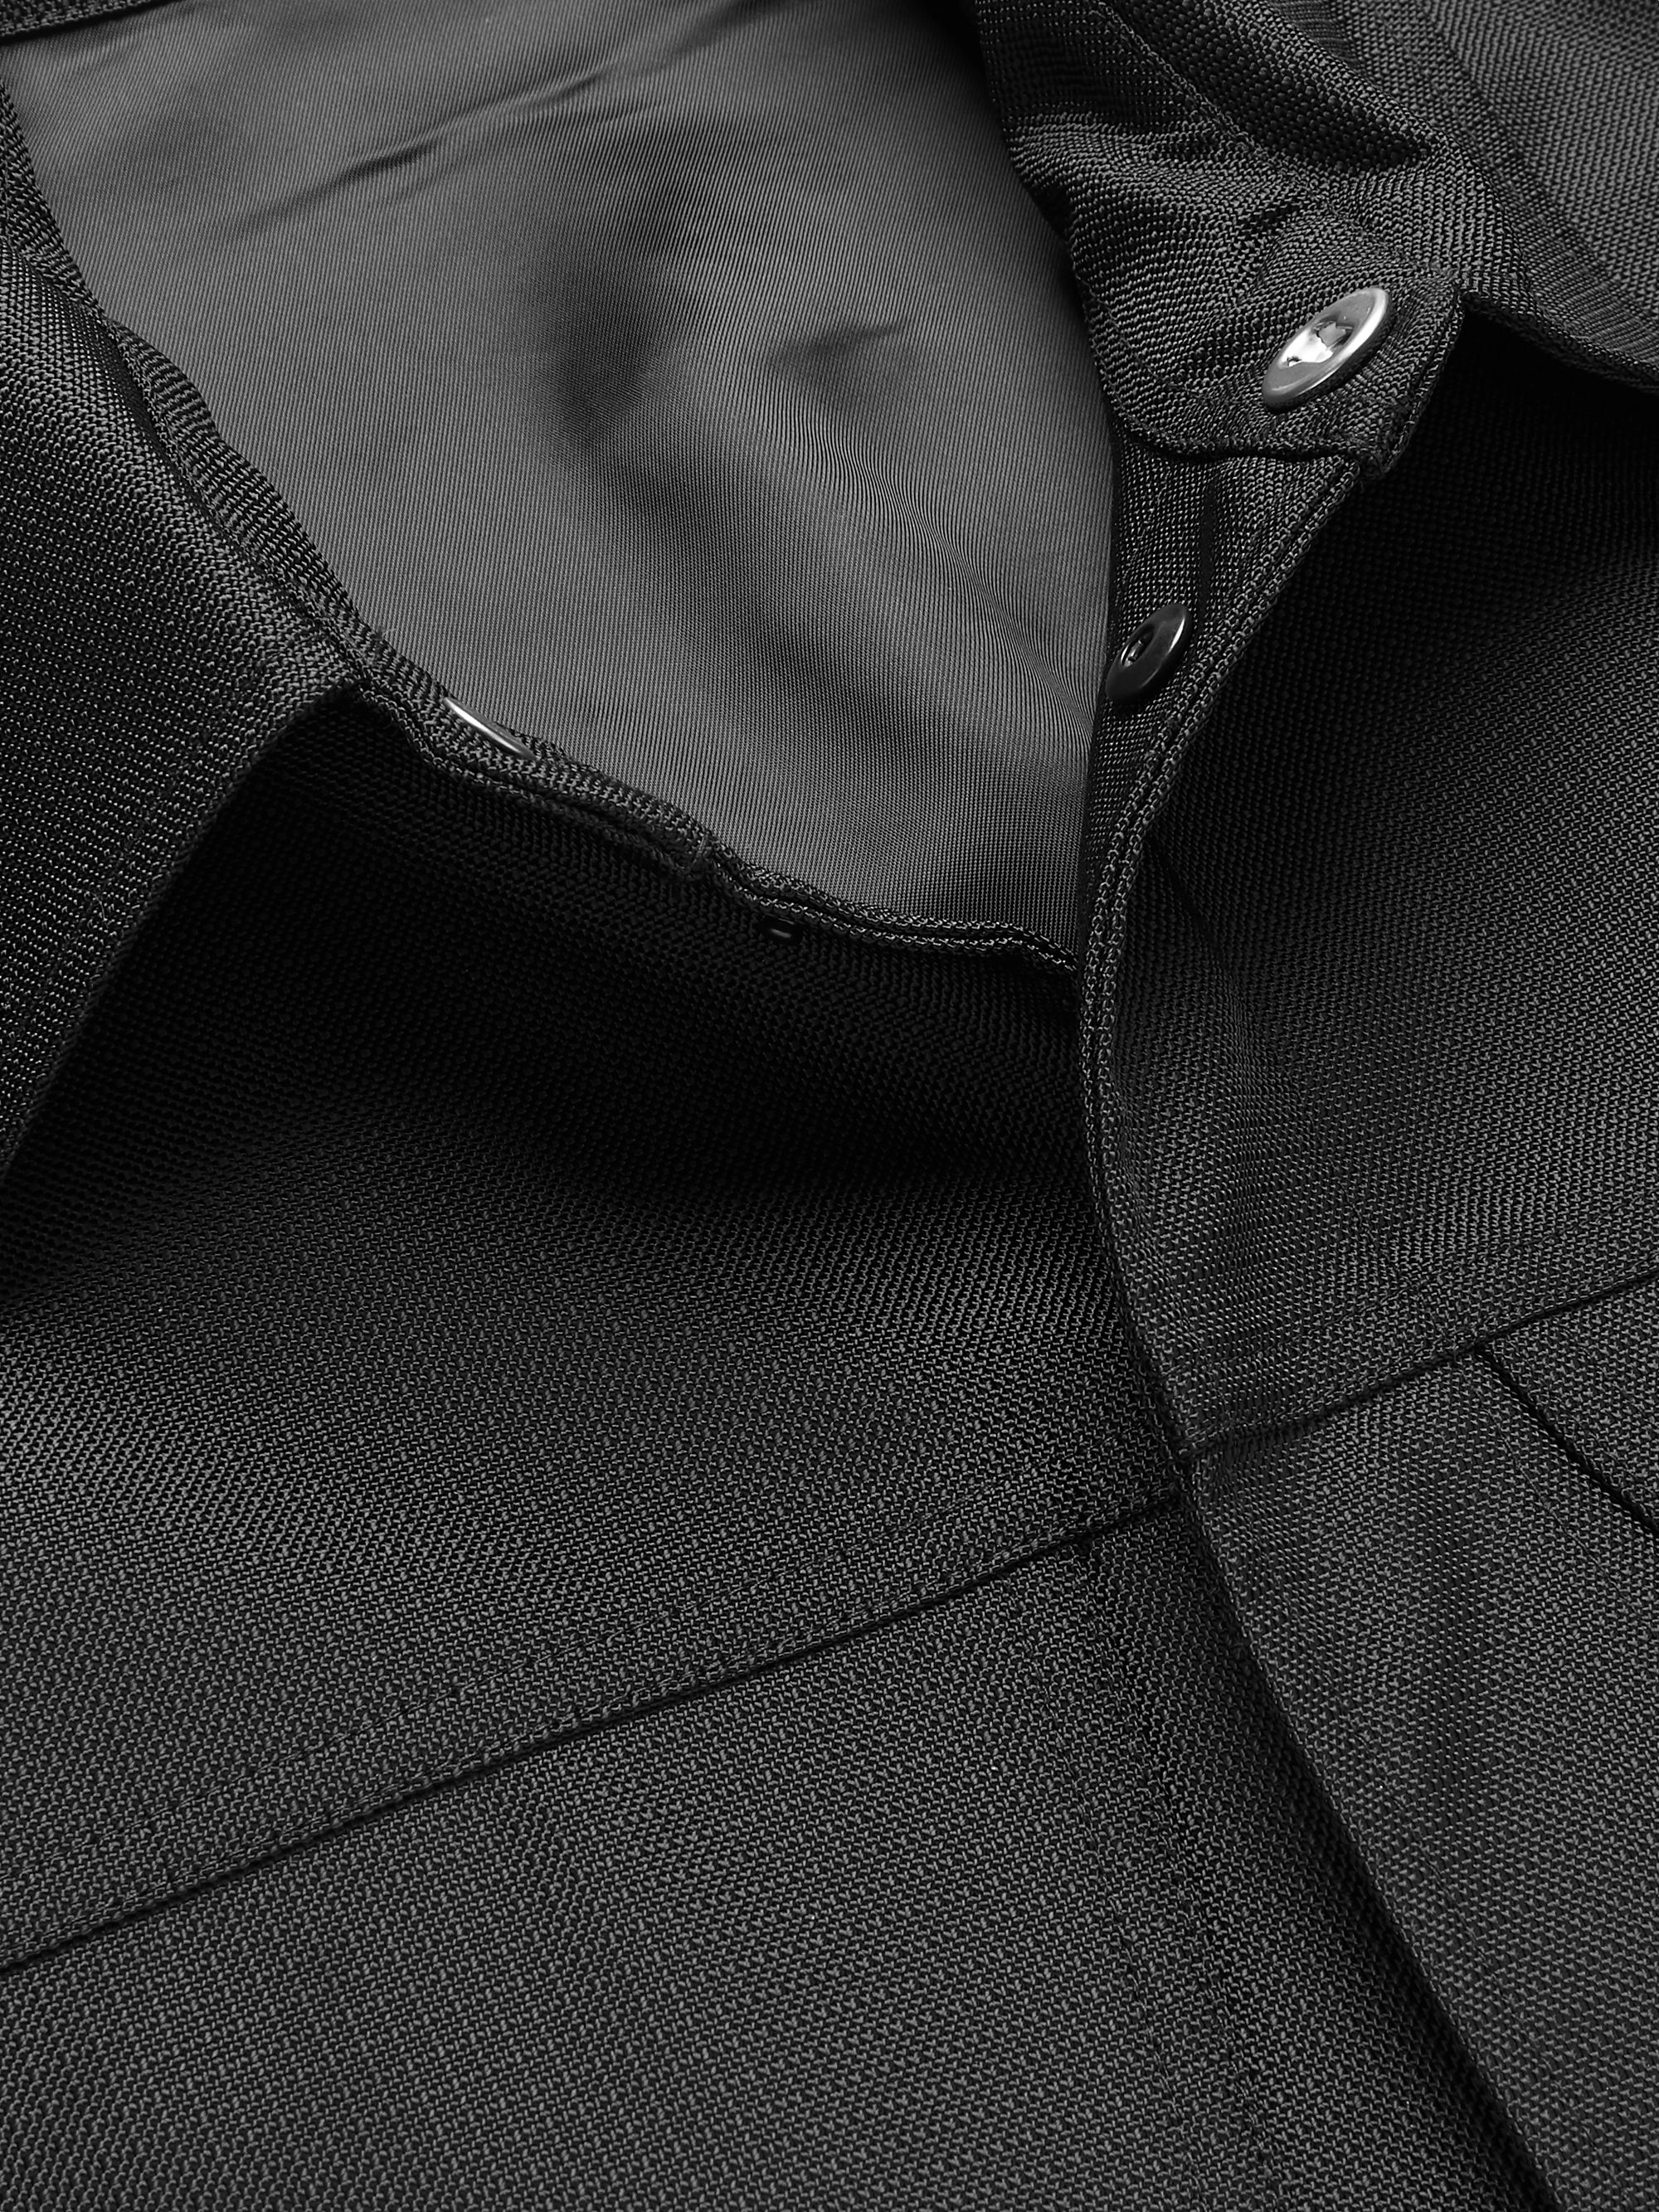 Black Cordura Coat | Affix